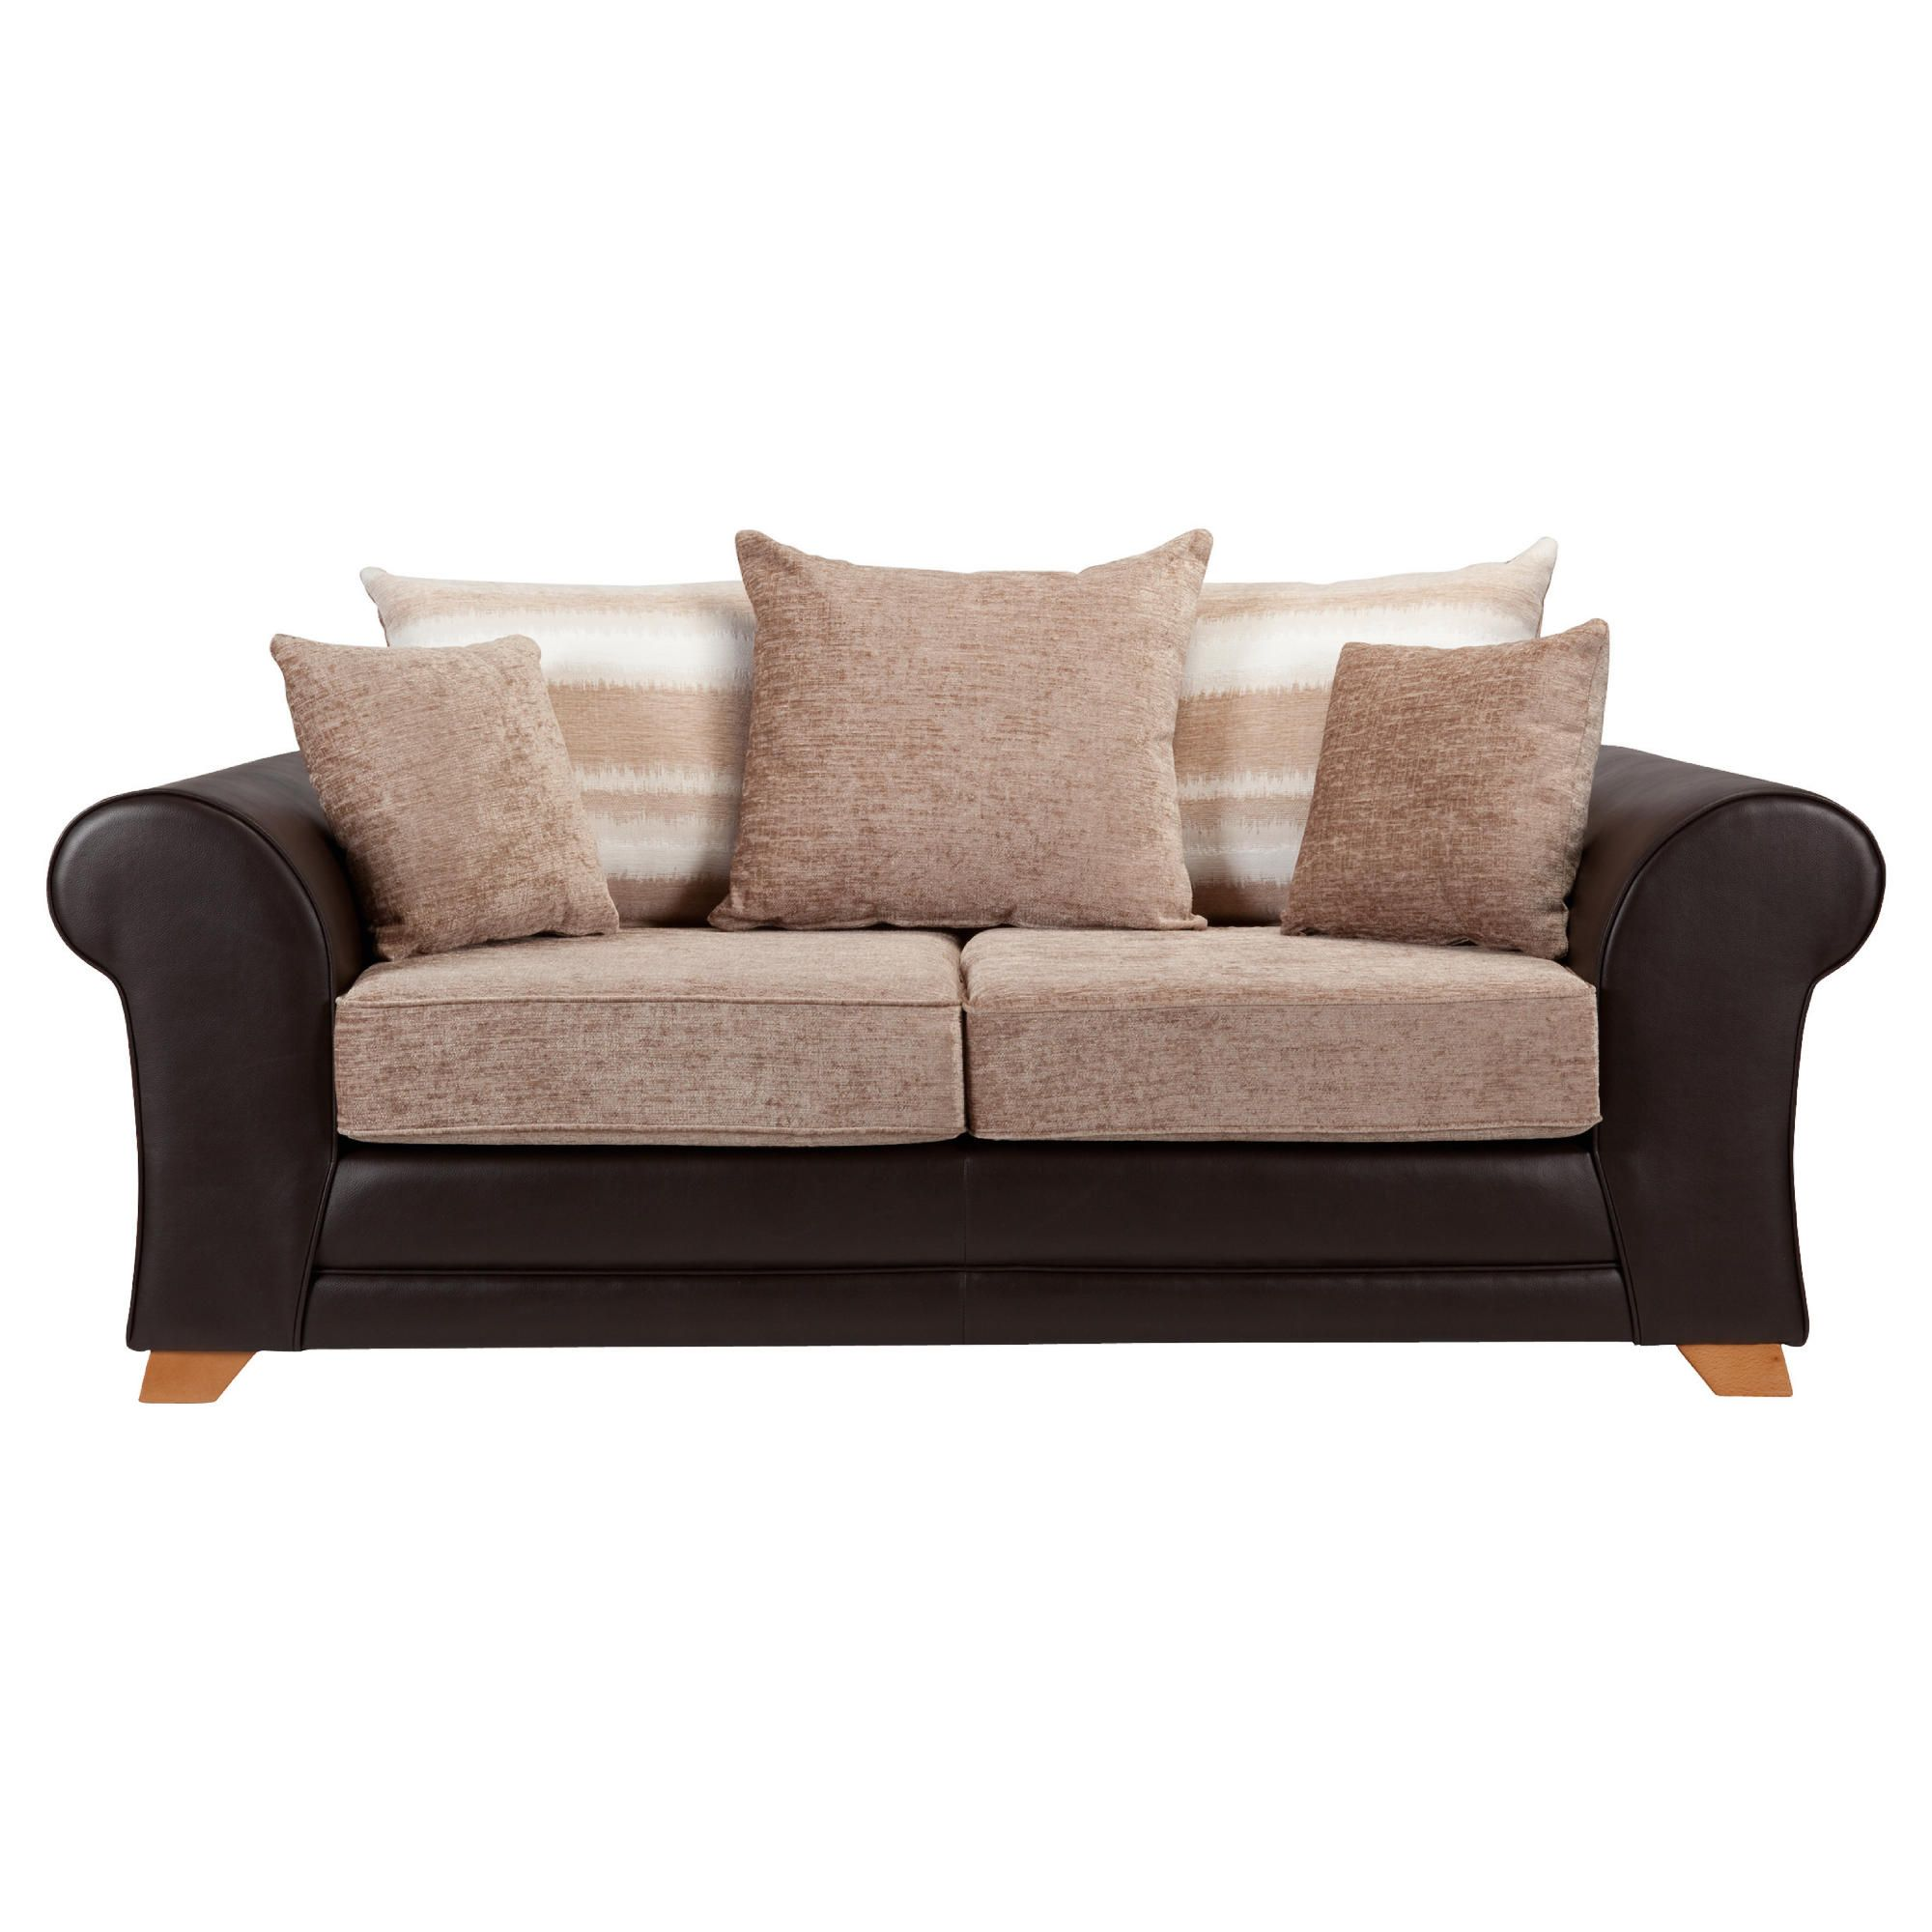 Lima fabric mix sofabed chocolate and mink at Tesco Direct